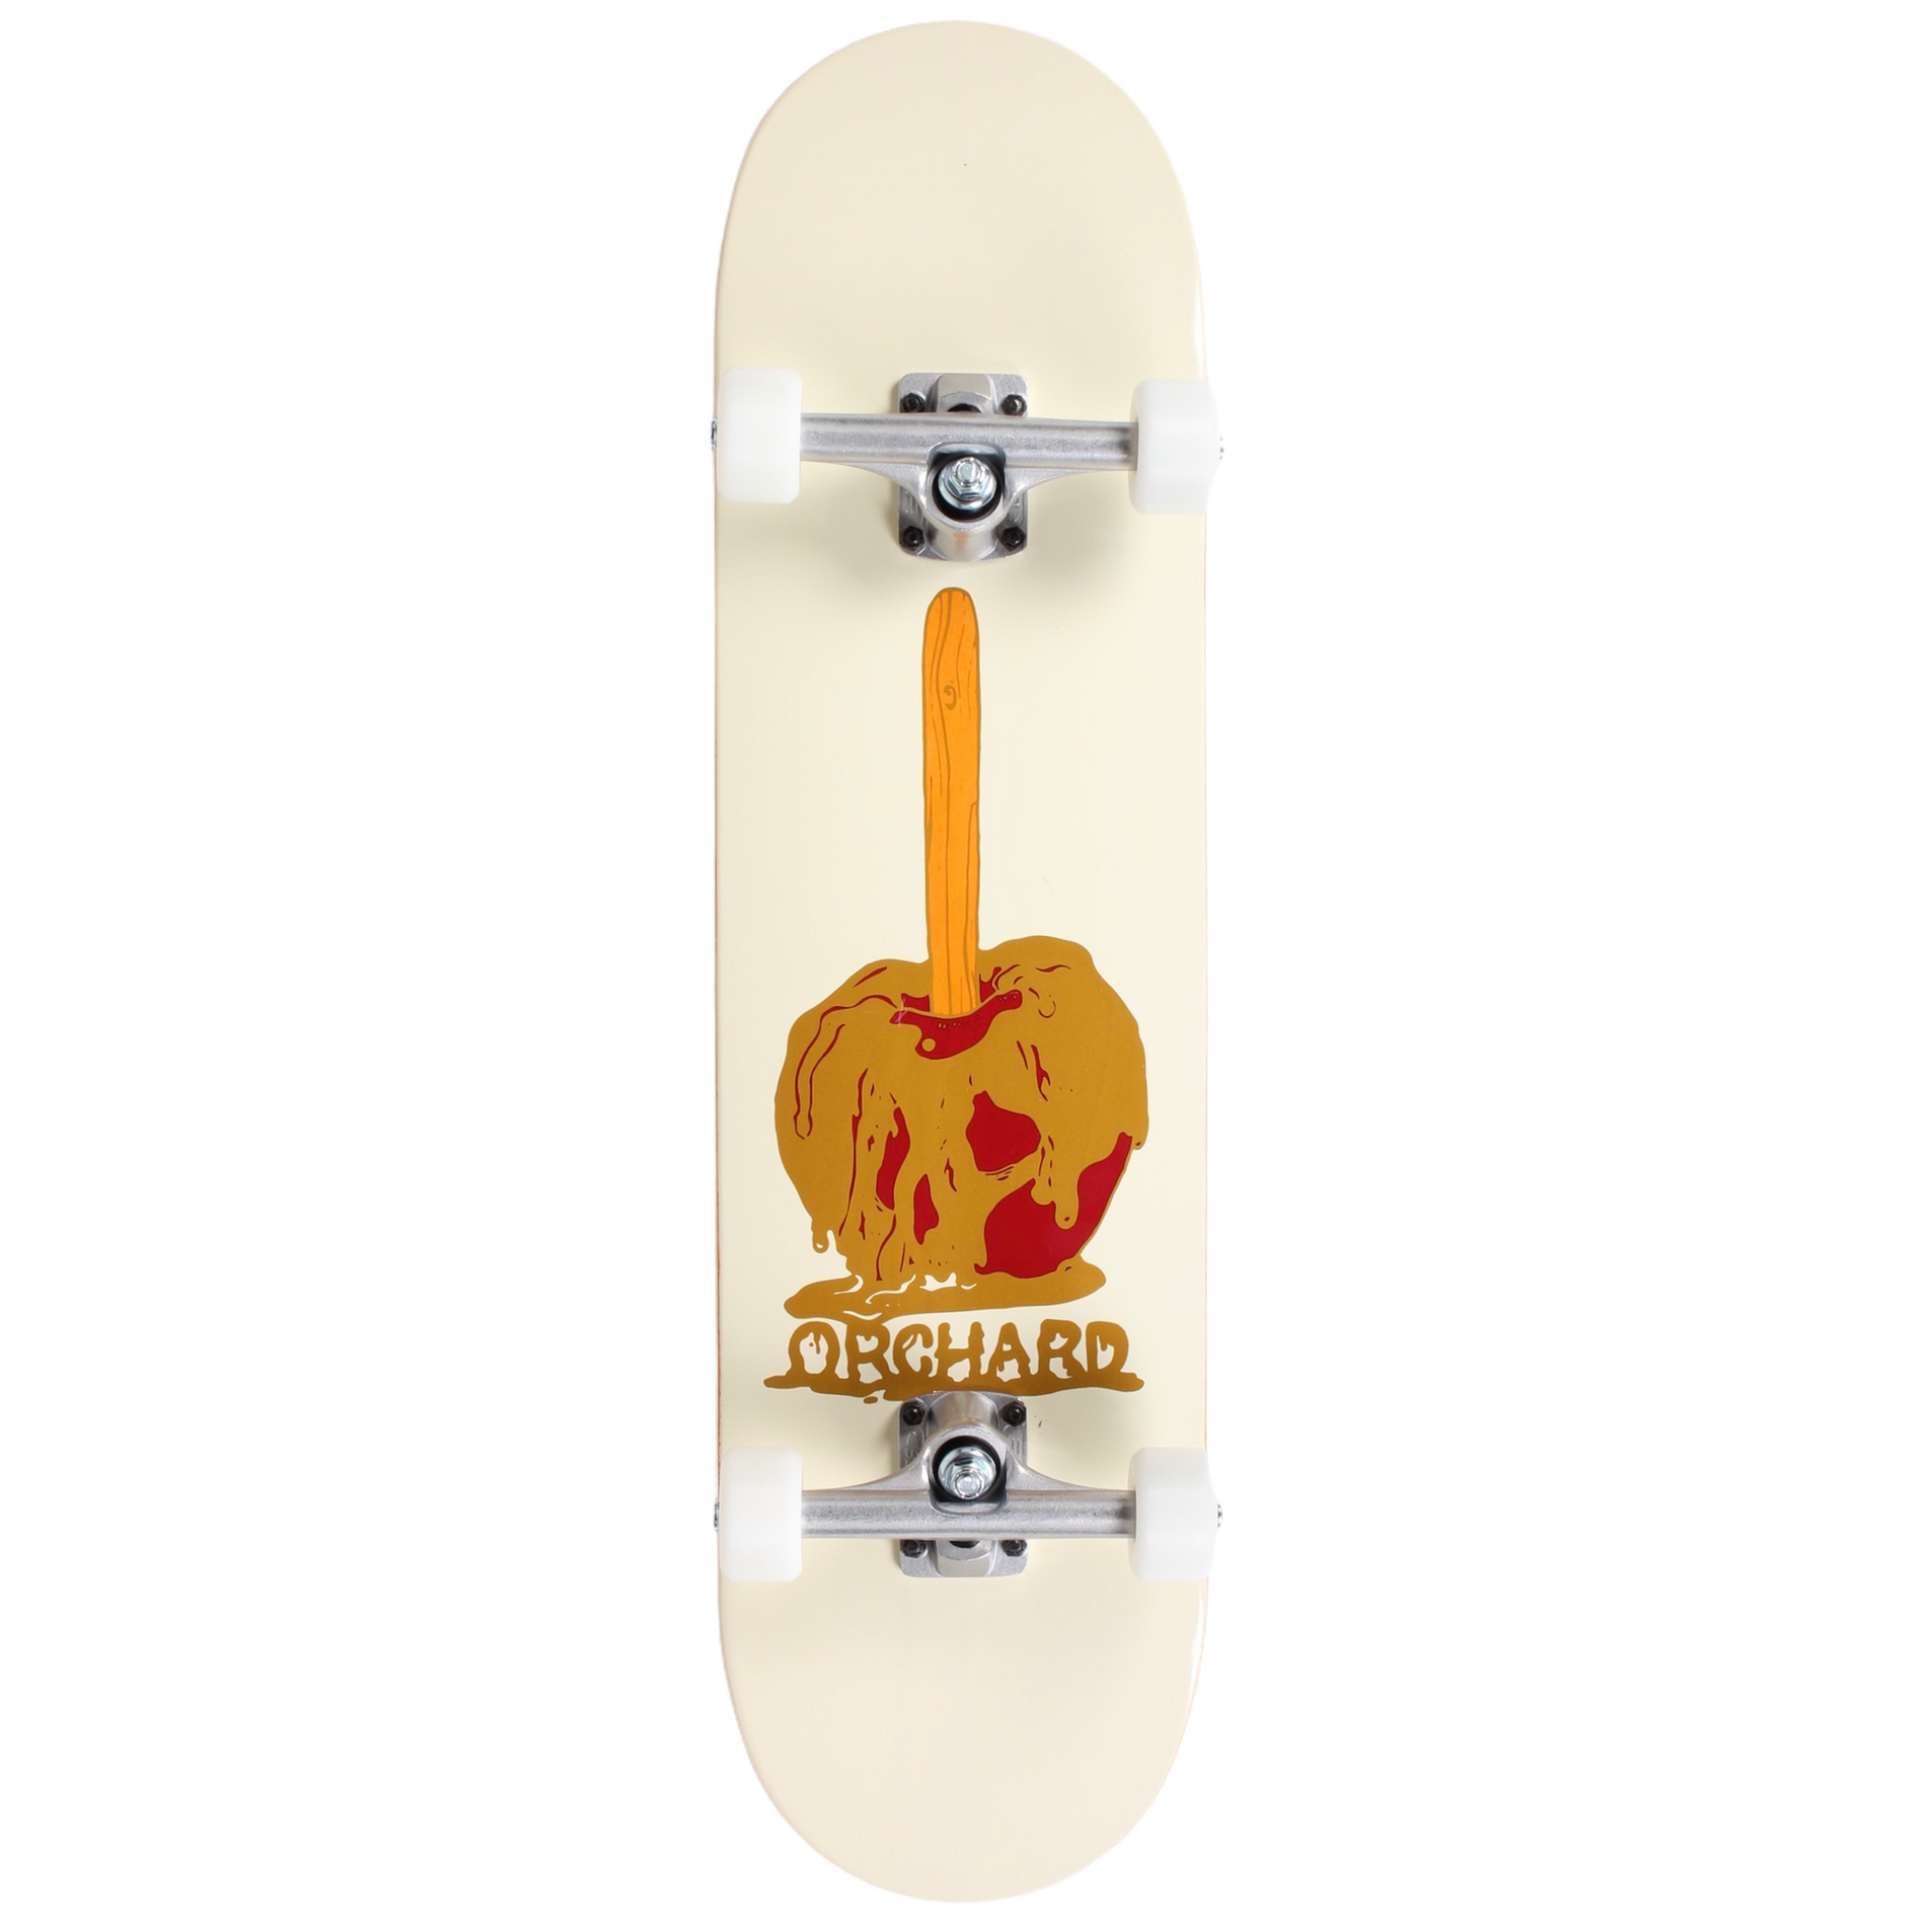 Orchard Candy Apple Hybrid Complete Skateboard 8.0 (With Free Skate Tool)